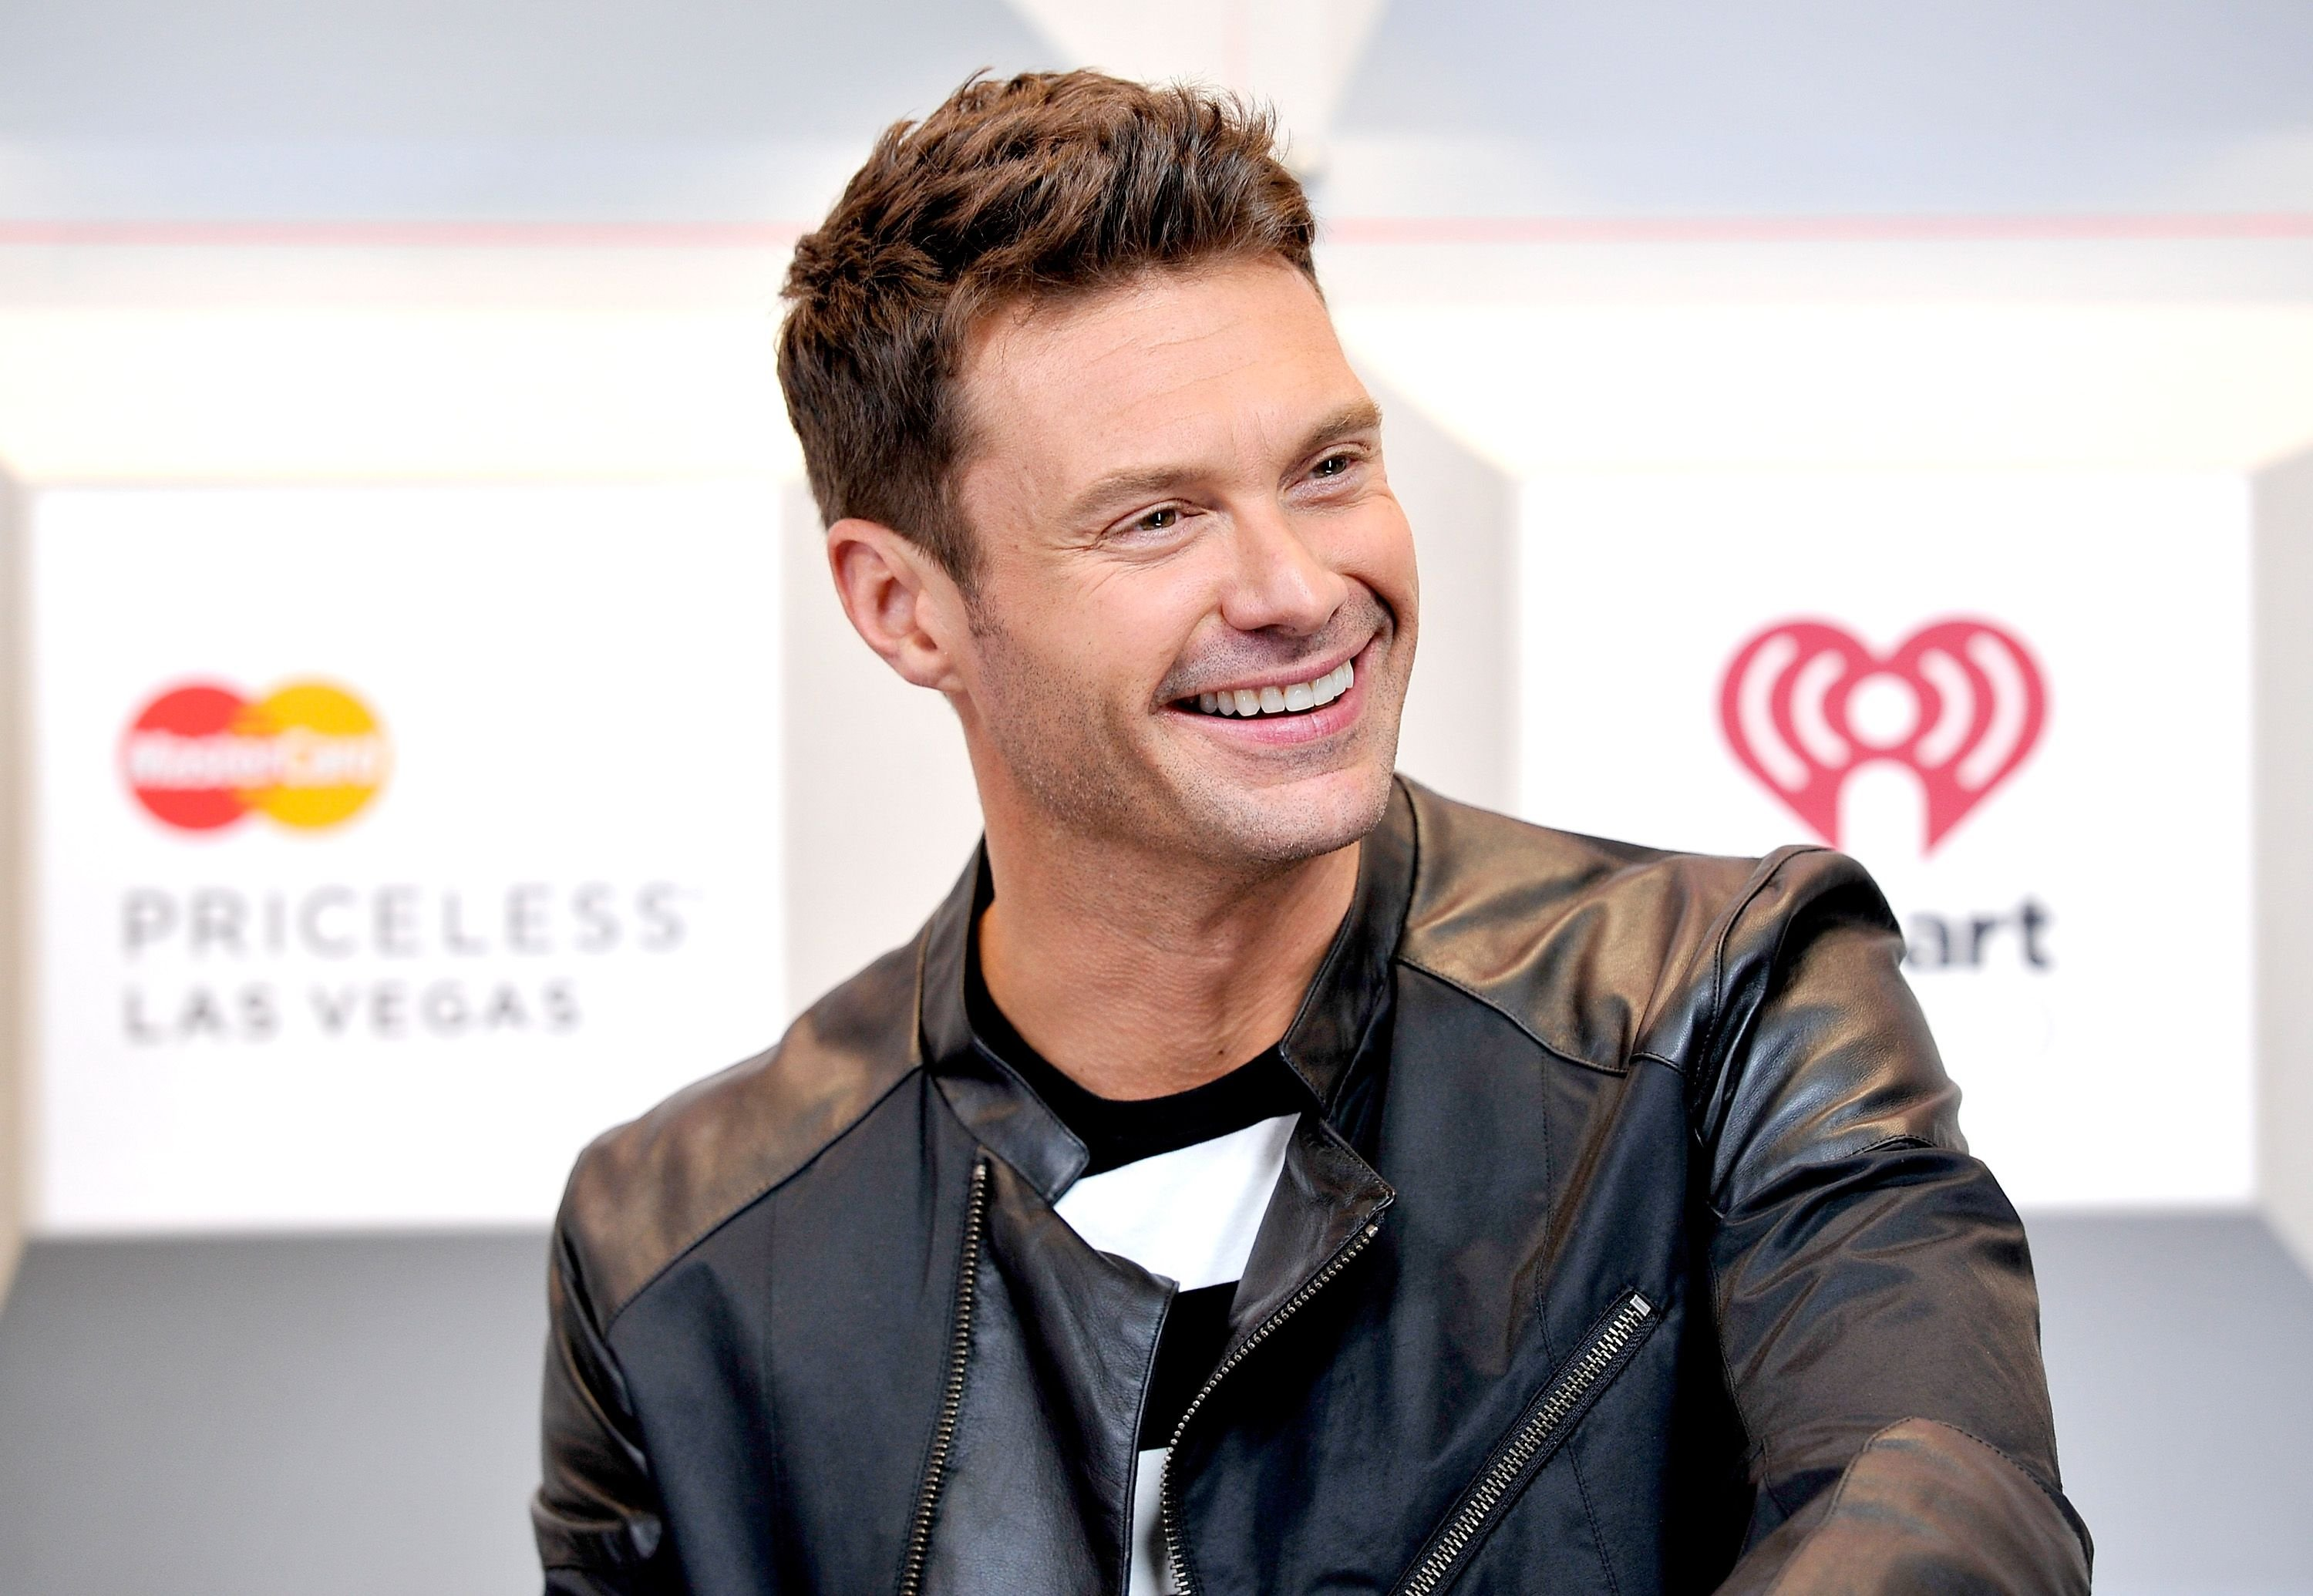 Host Ryan Seacrest at the 2014 iHeartRadio Music Festival at the MGM Grand Garden Arena on September 19, 2014 | Photo: Getty Images